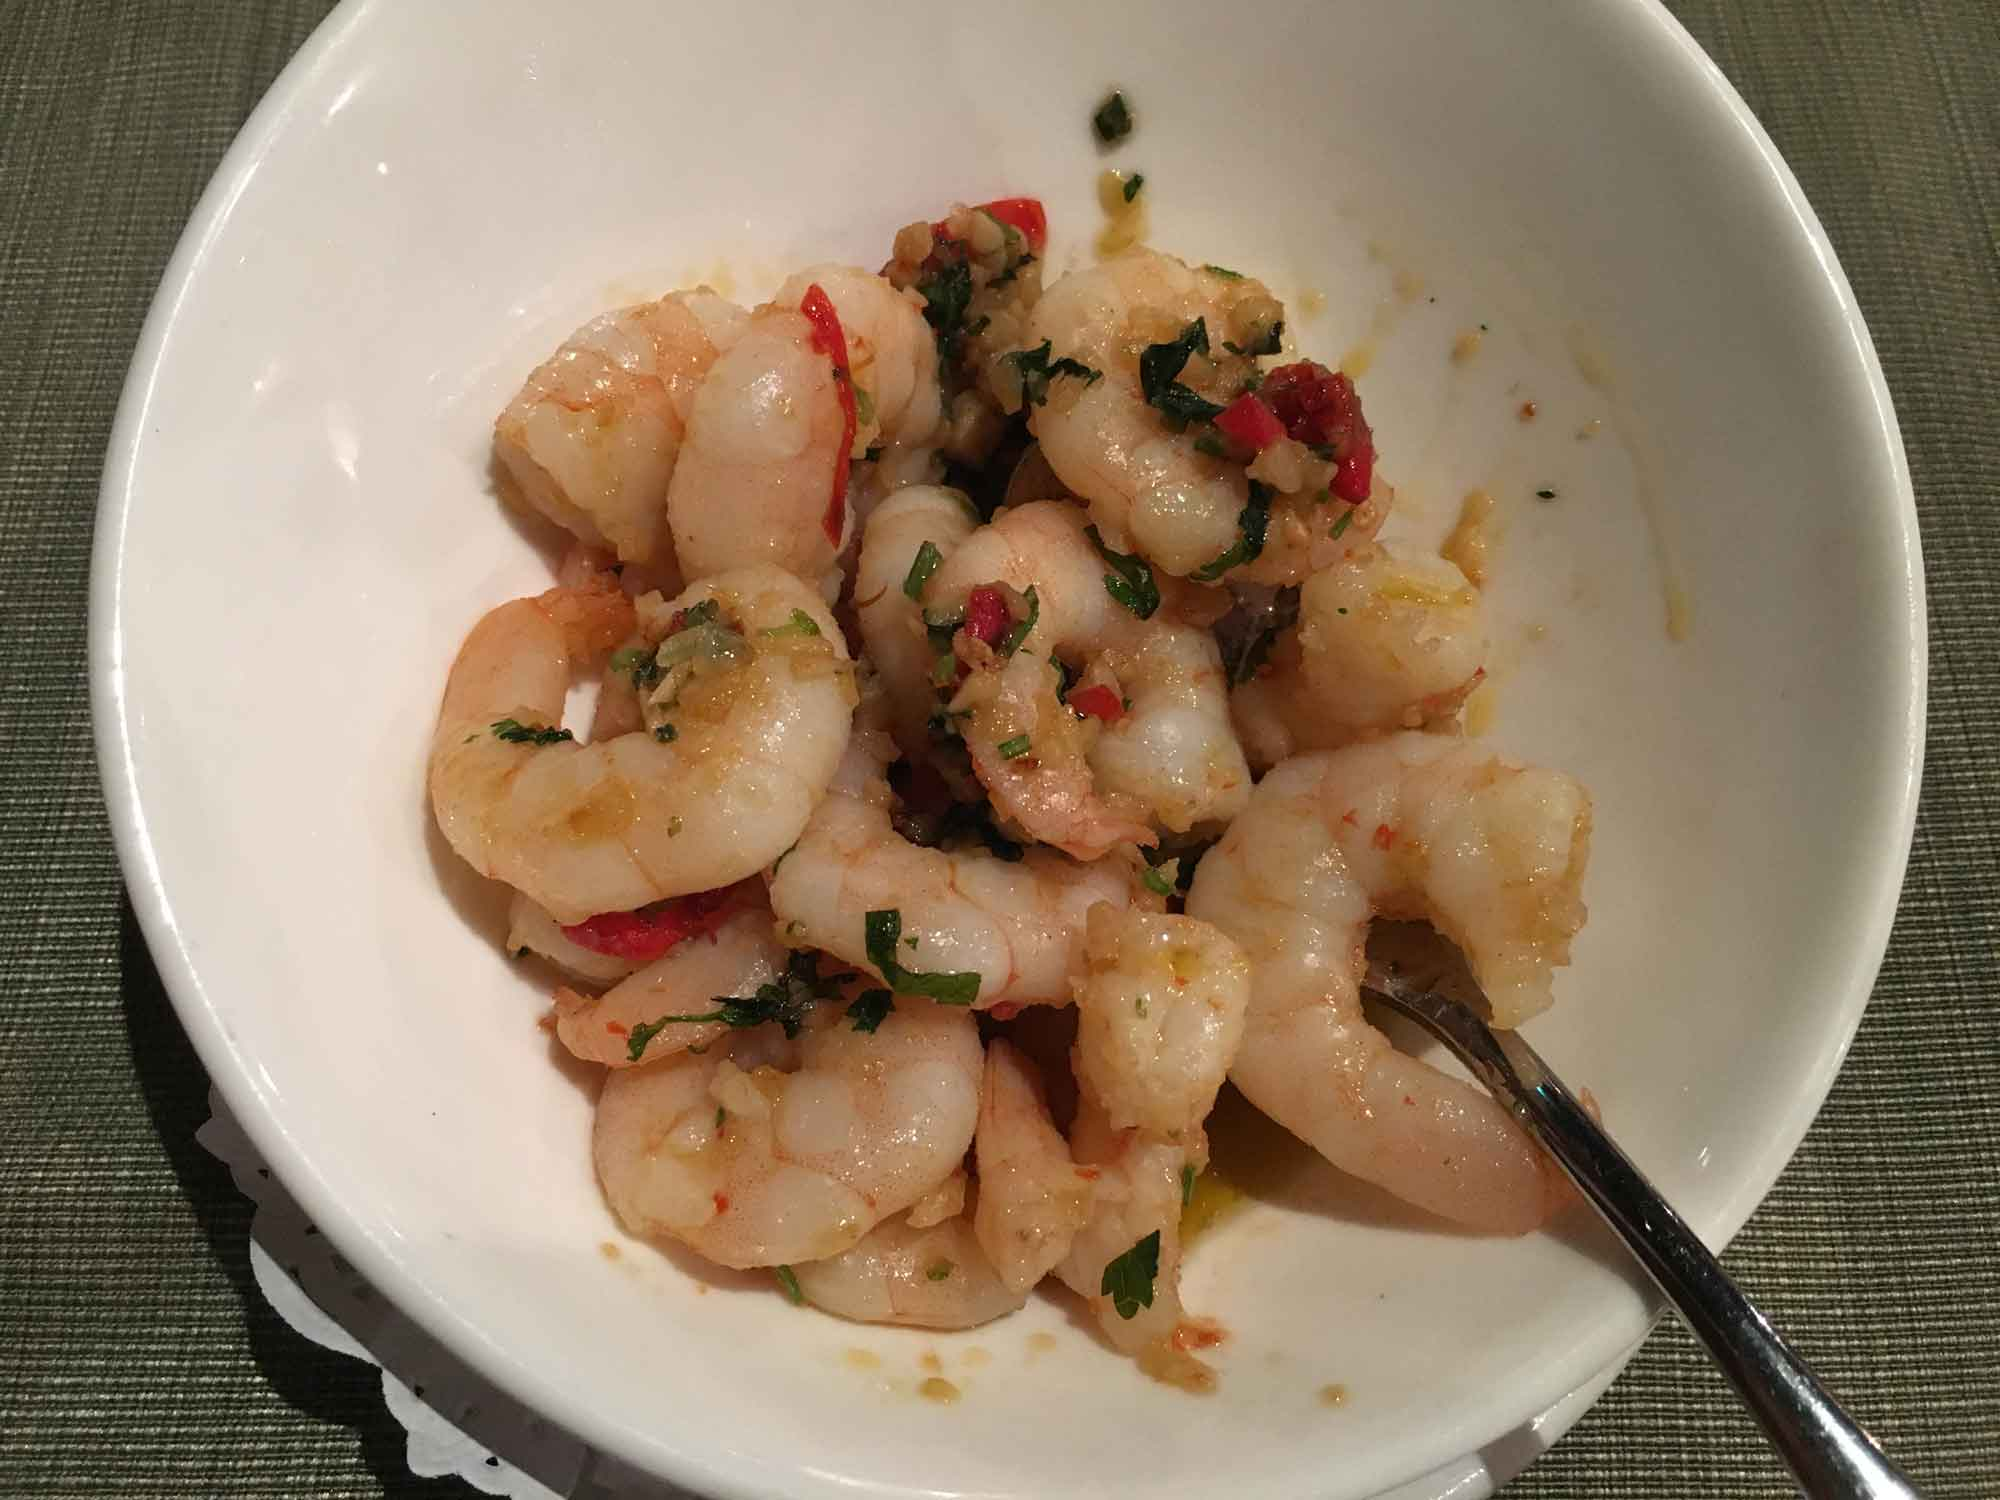 Litoral Macau garlic shrimp